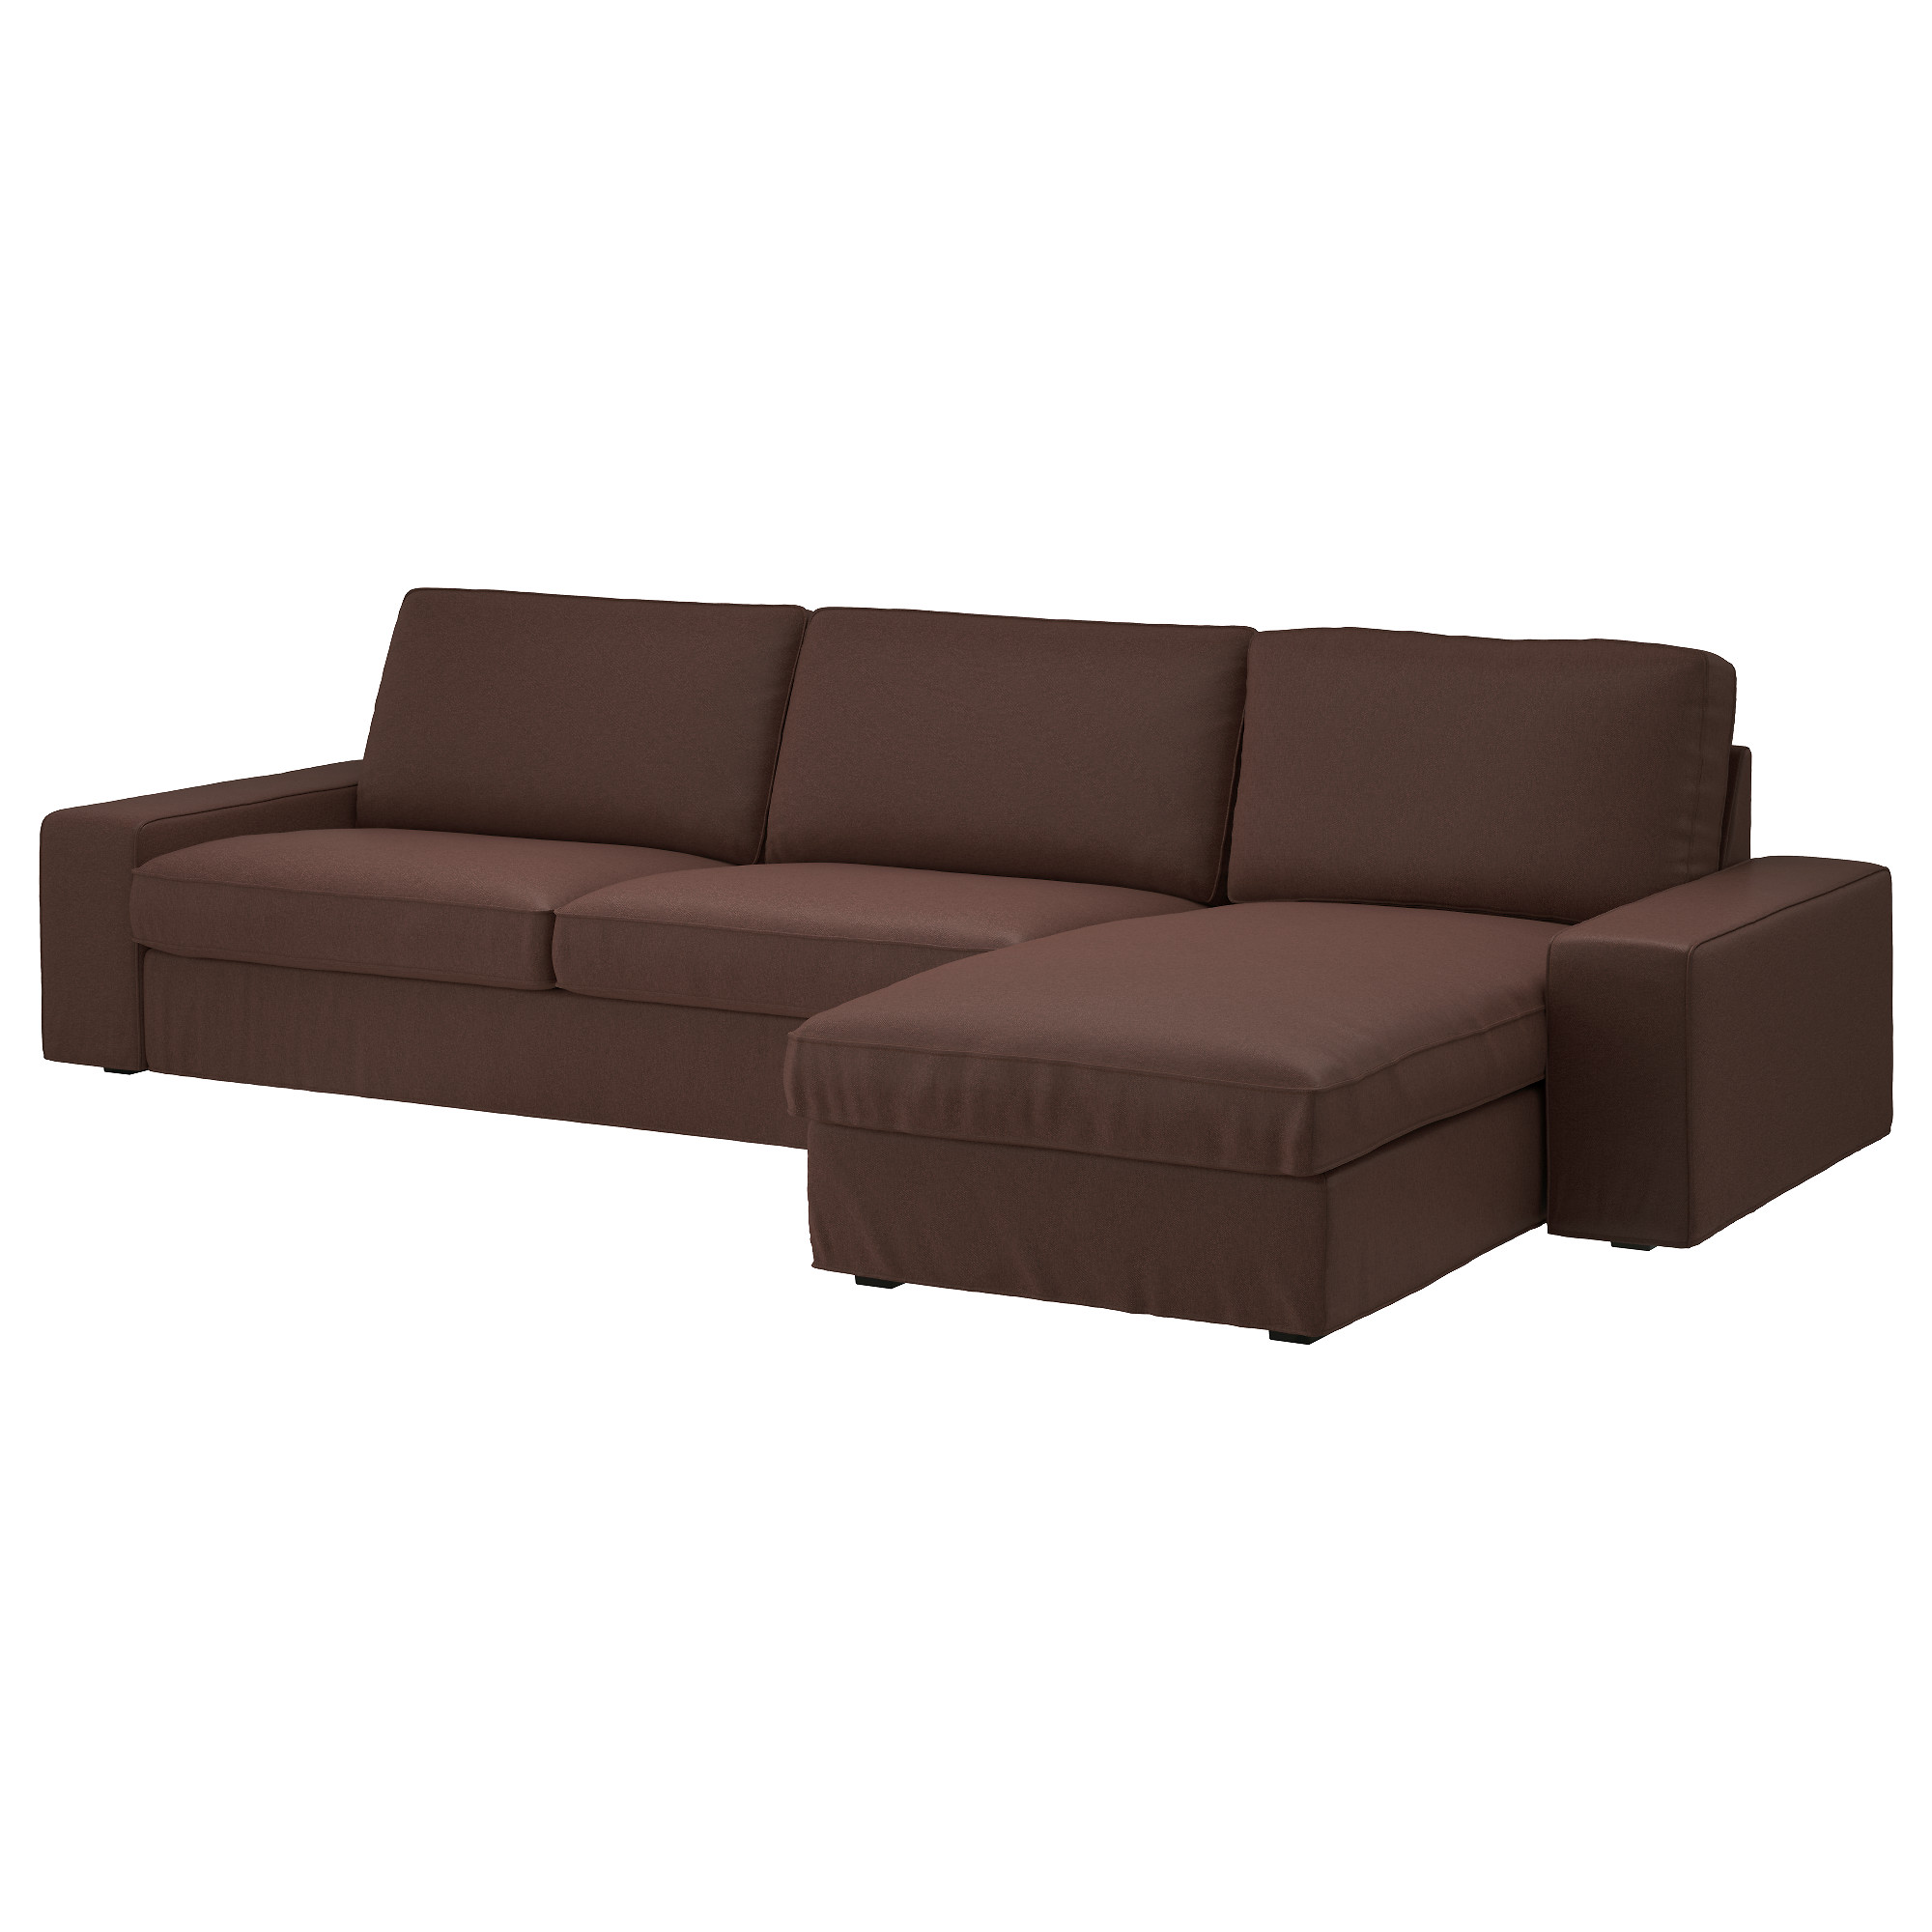 KIVIK 4 seat sofa Hillared anthracite IKEA